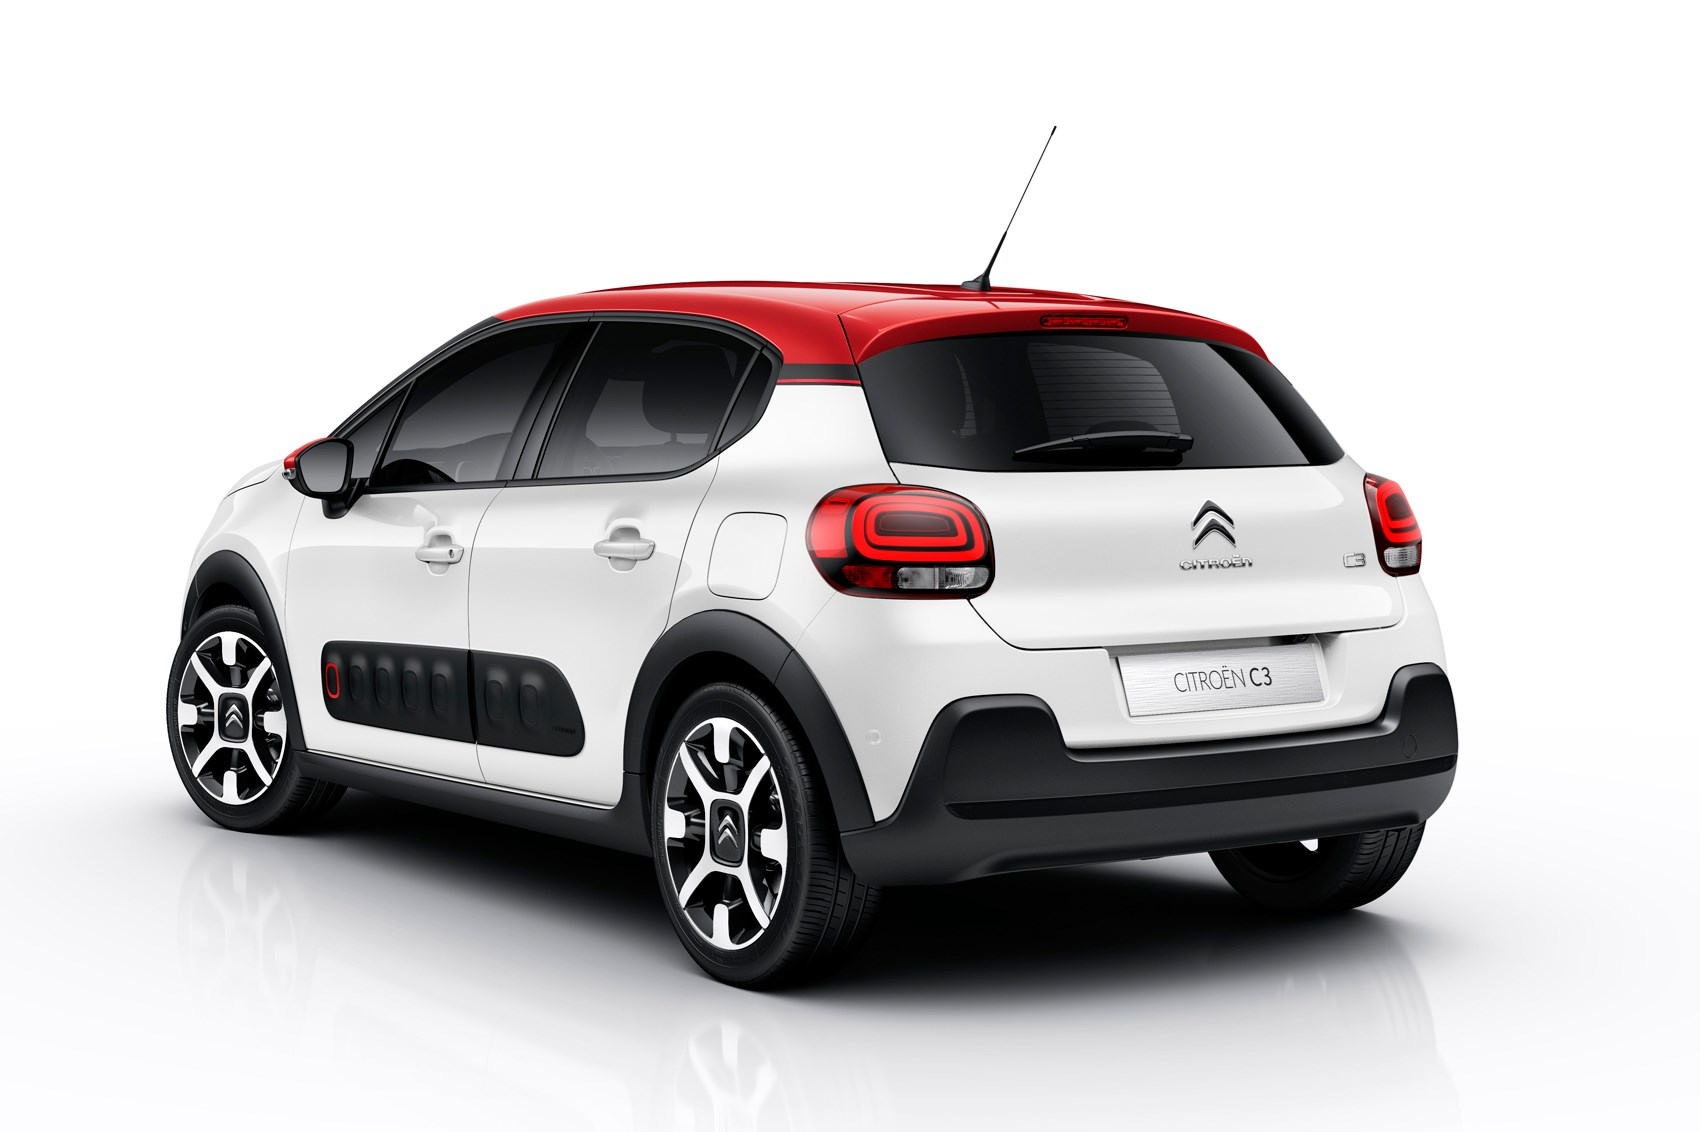 new 2017 citroen c3 revealed it 39 s cactus take 2 car magazine. Black Bedroom Furniture Sets. Home Design Ideas